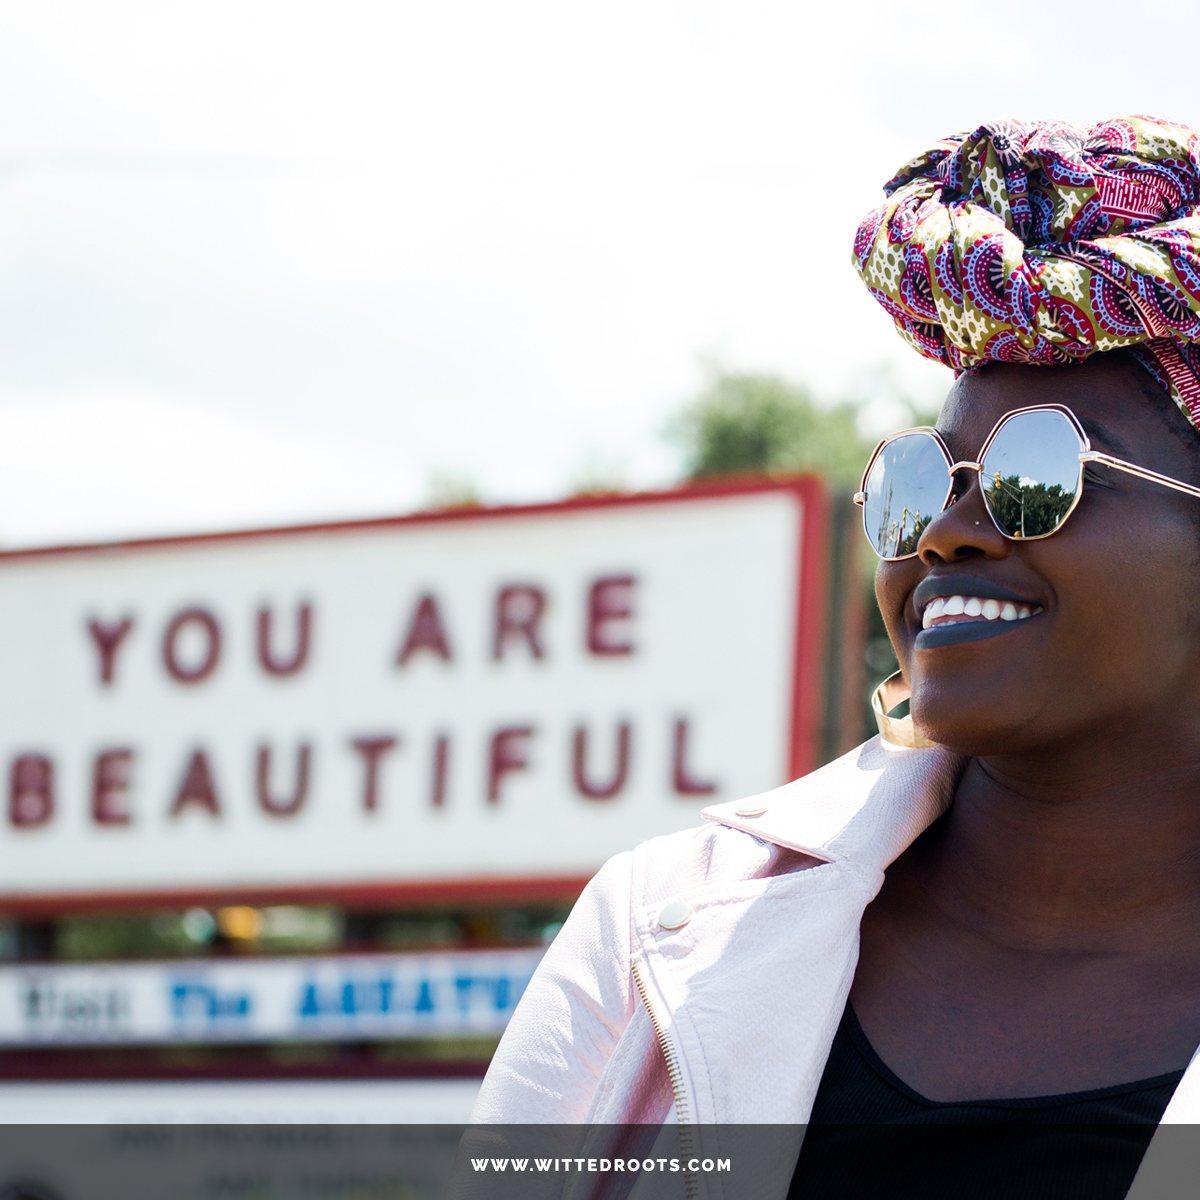 """Black woman wearing reflective sunglasses and headwrap, smiling off into the distance. The sign """"You Are Beautiful"""" shows in the background."""